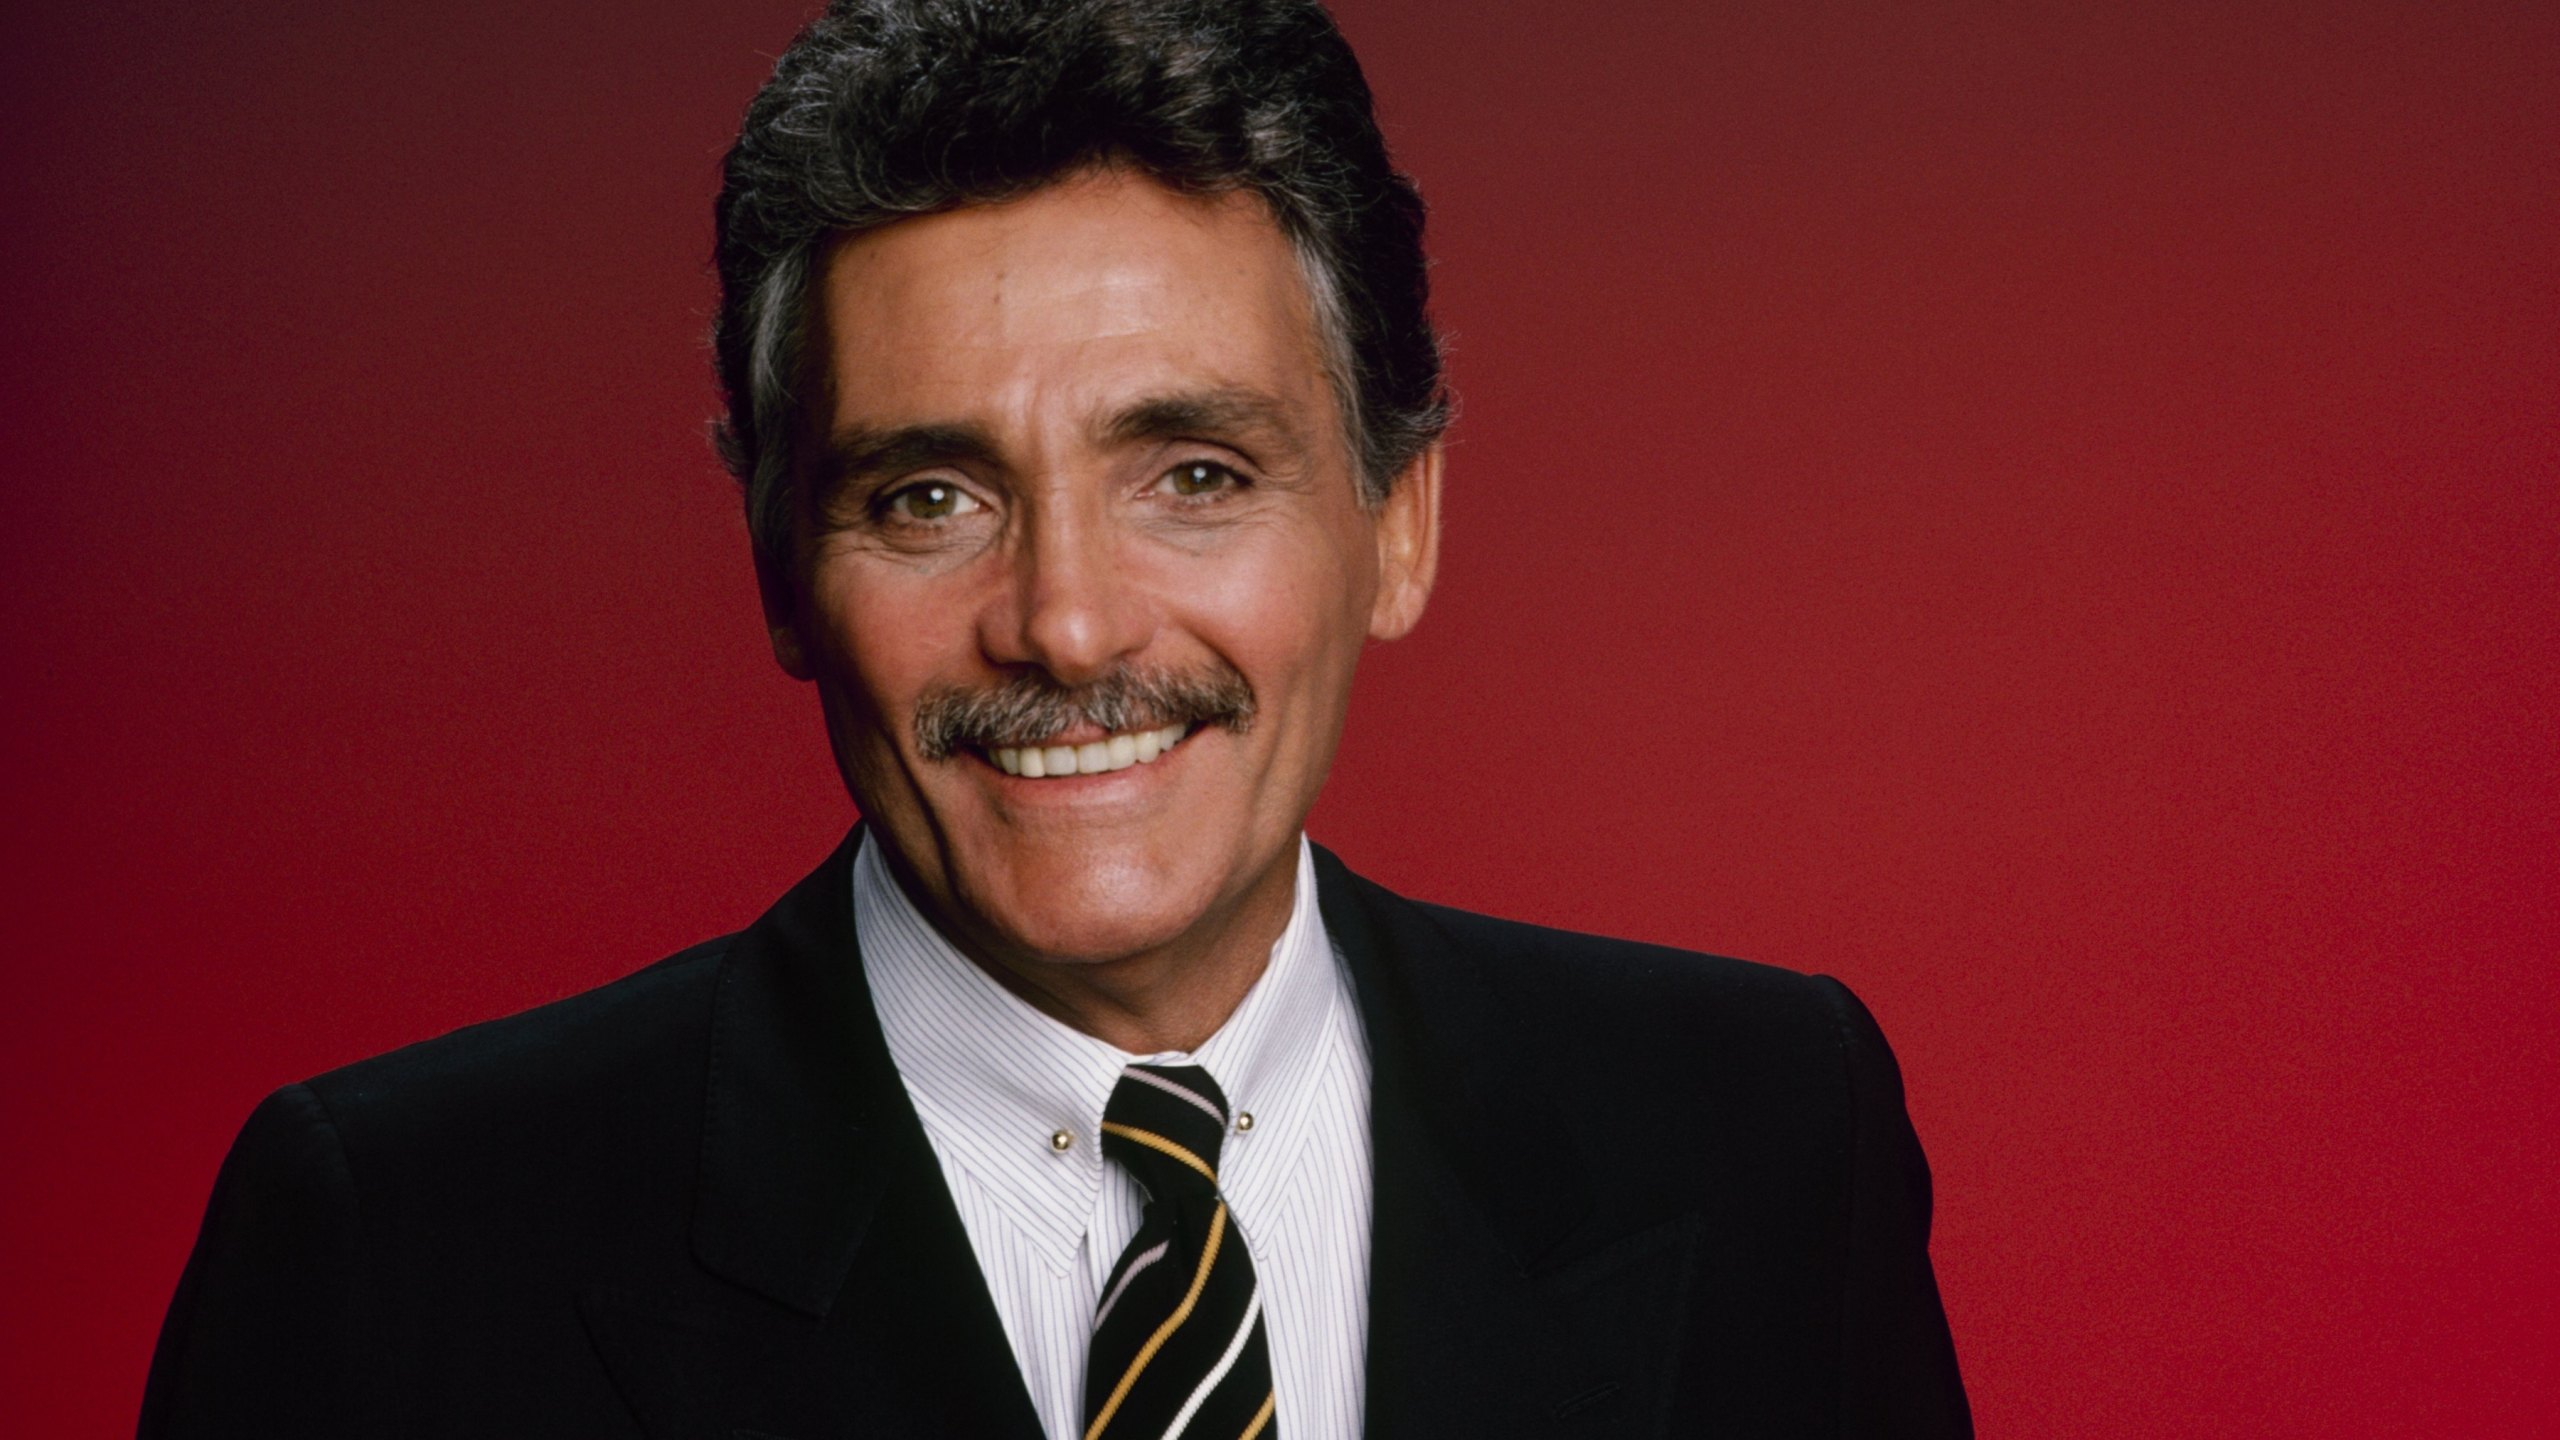 David Hedison poses for a photo on Nov. 11, 1985. (Credit: Walt Disney Television via Getty Images Photo Archives/Walt Disney Television via Getty Images)